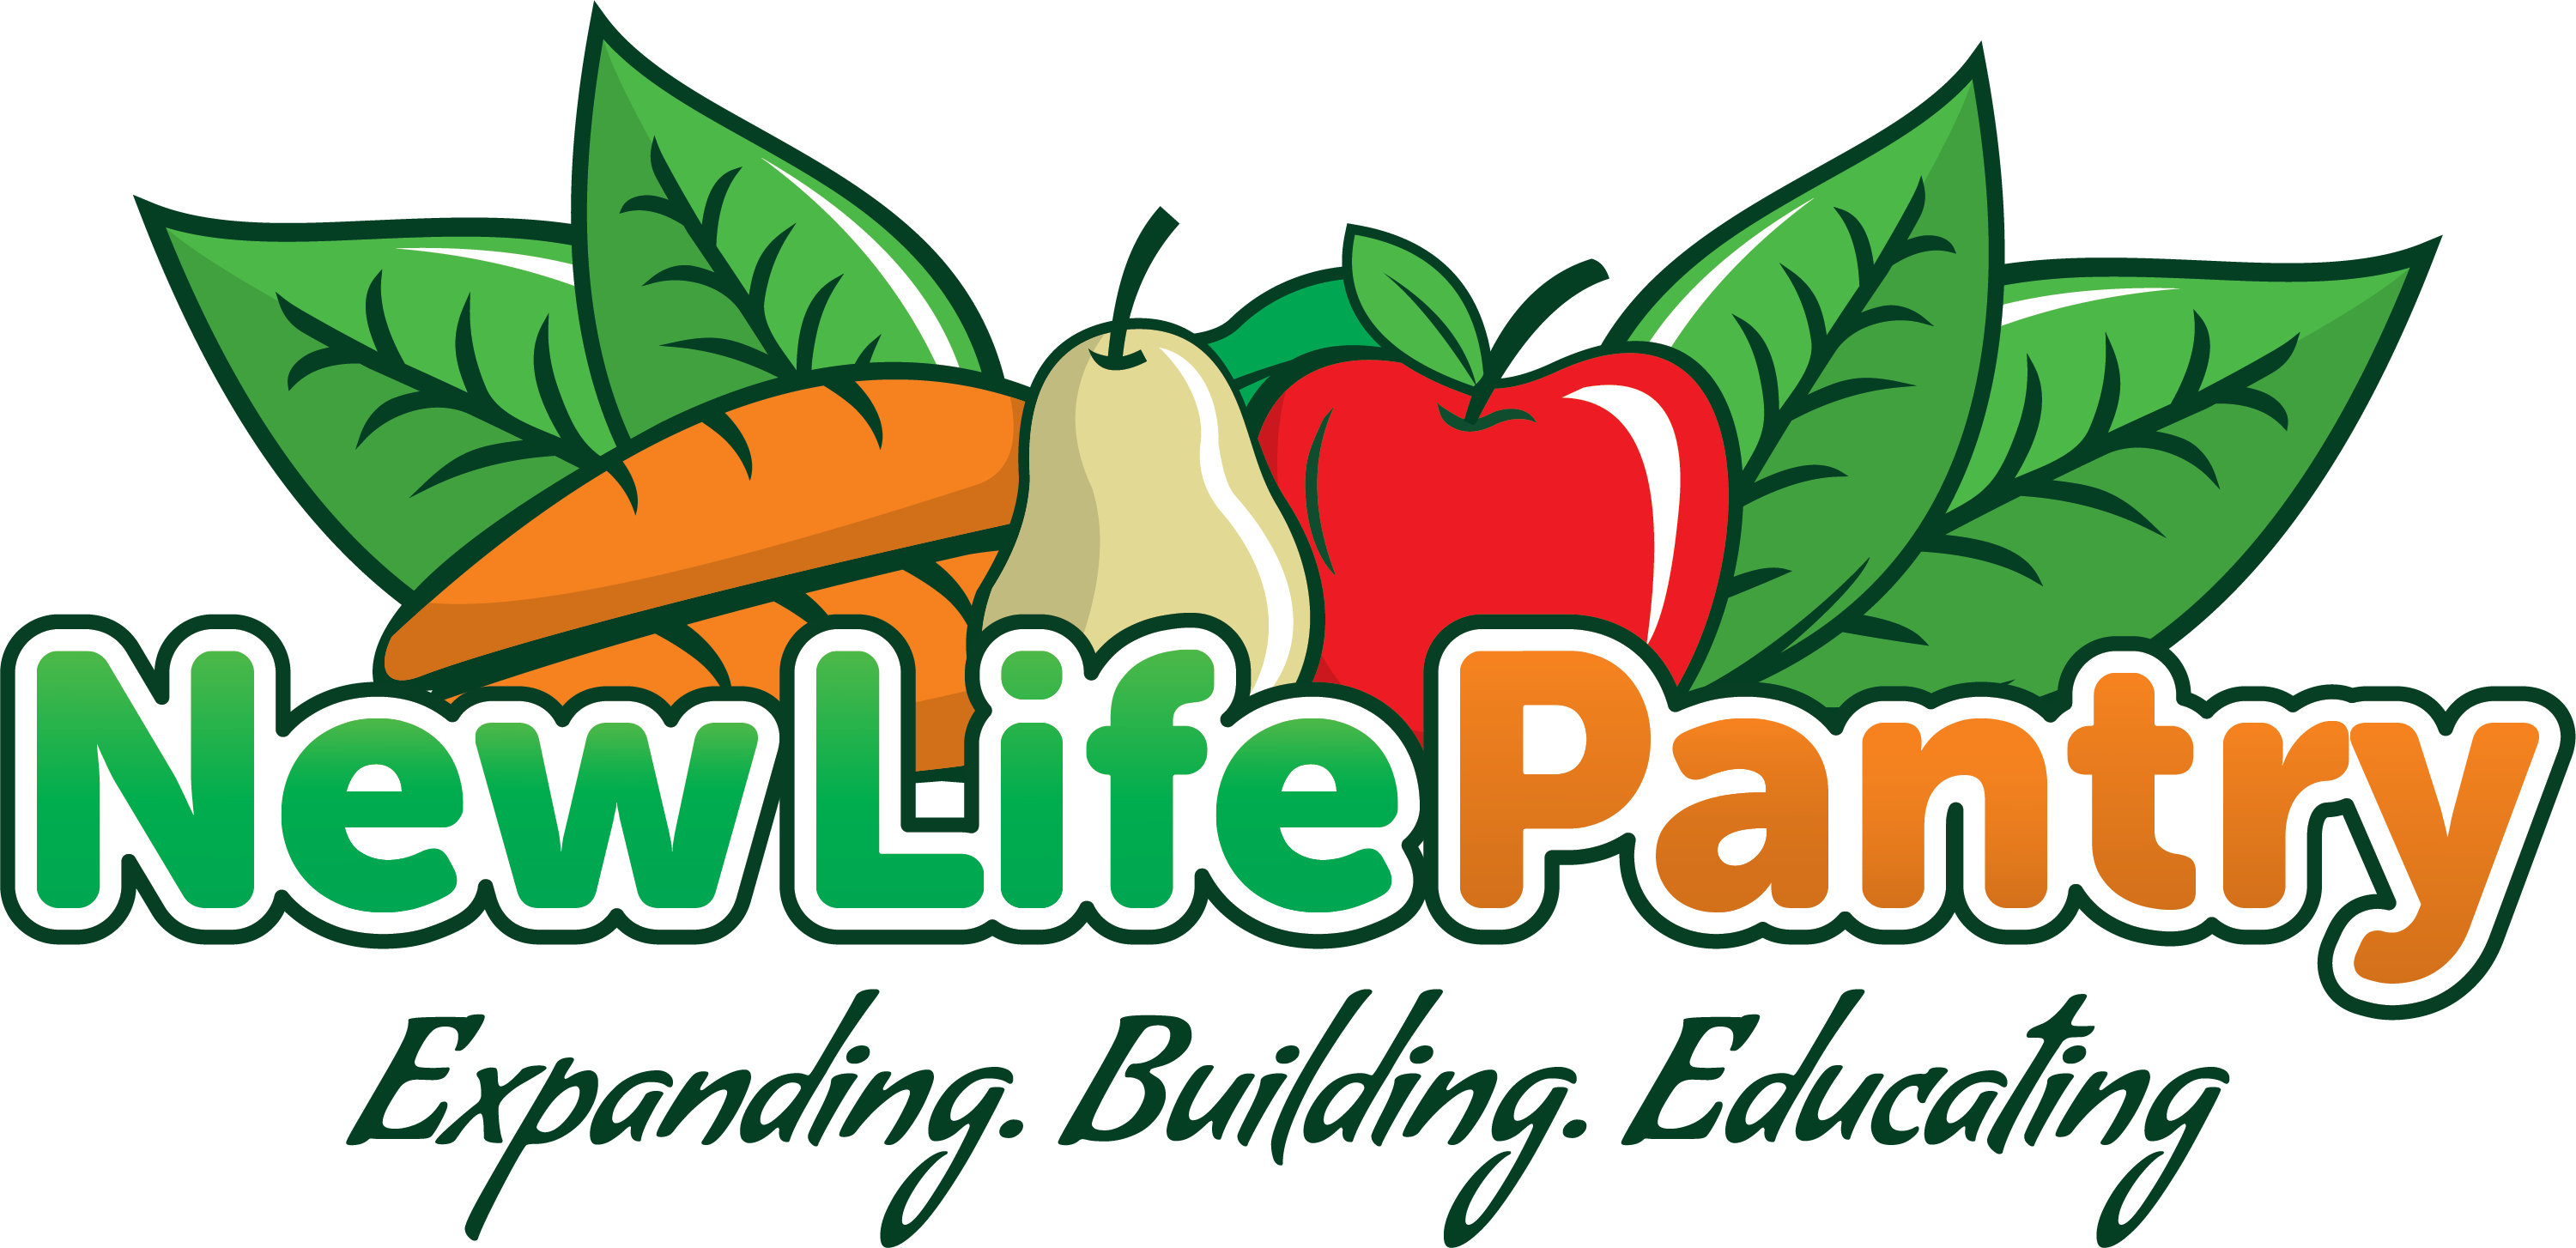 New Life Pantry